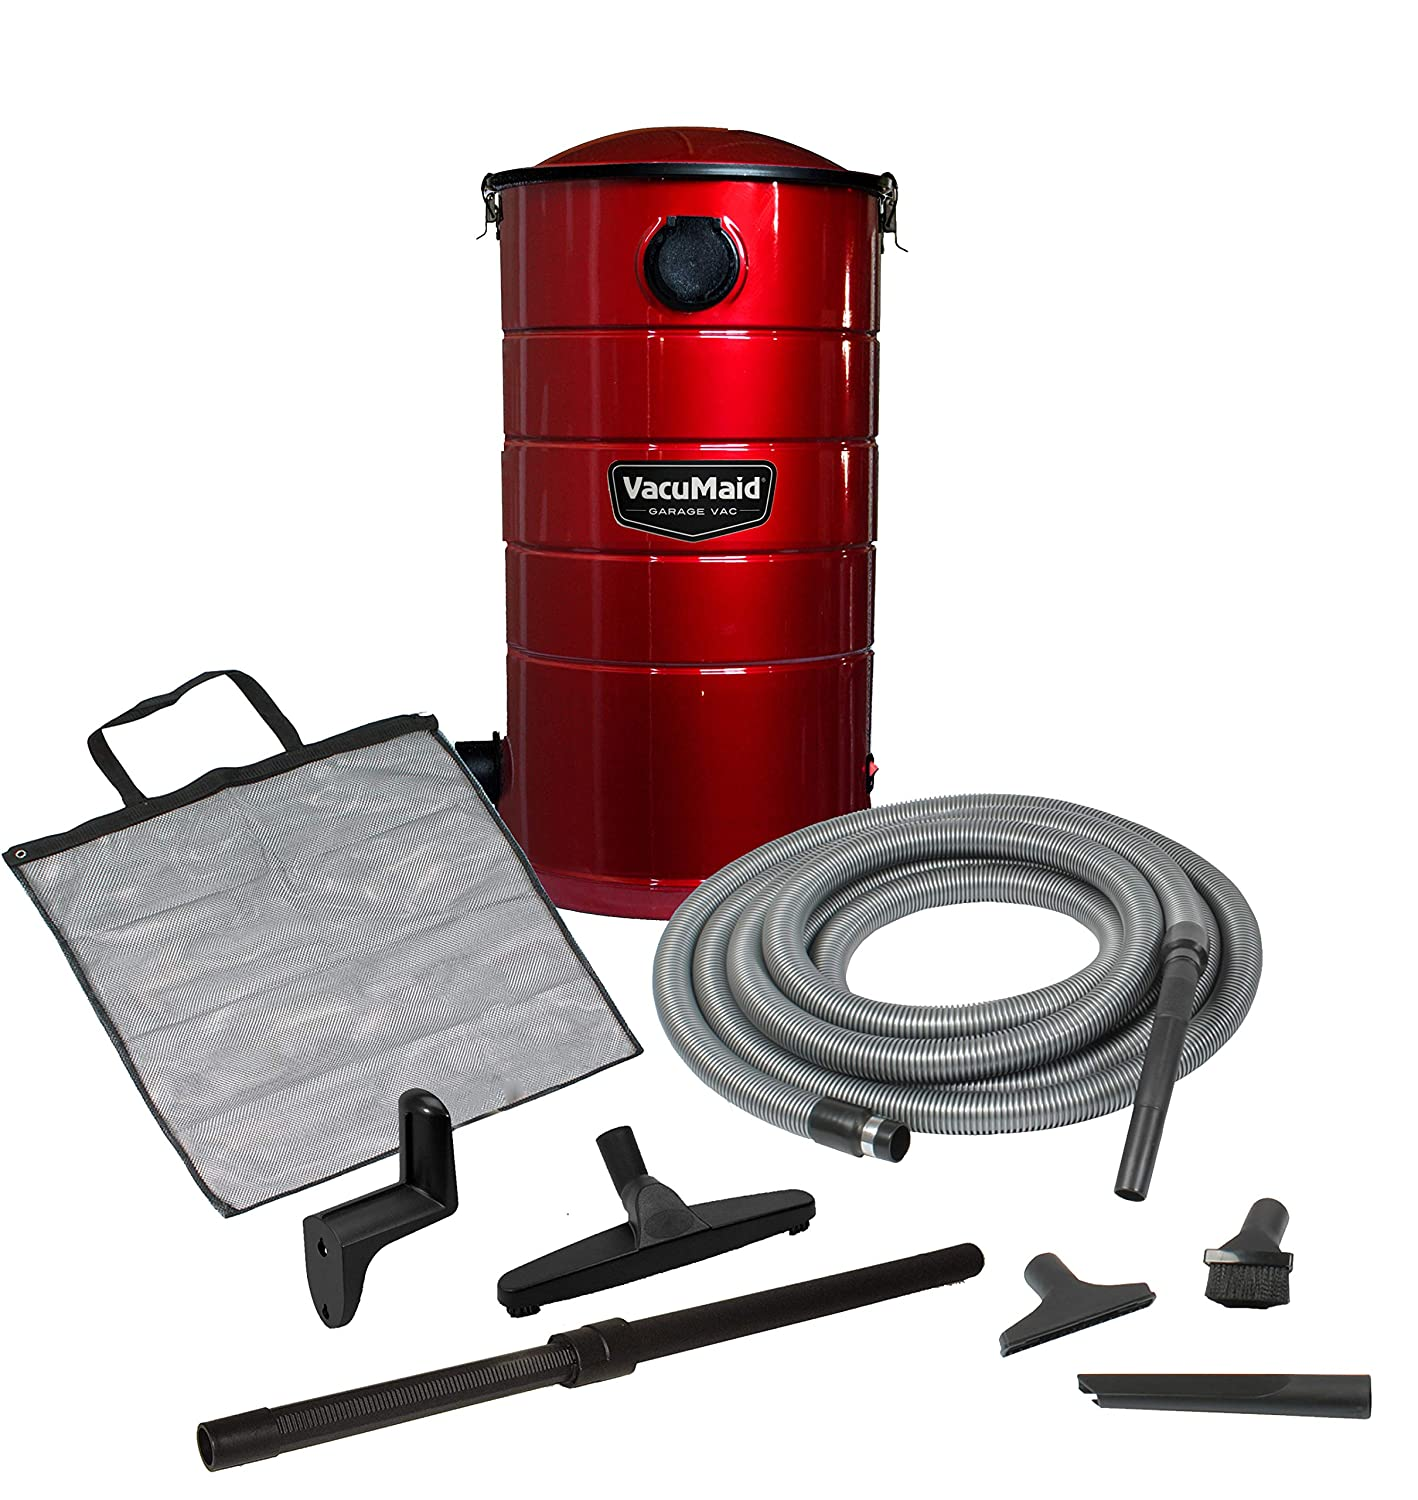 VacuMaid GV30R Wall Mounted Garage and Car Vacuum with 30 ft hose and Tools